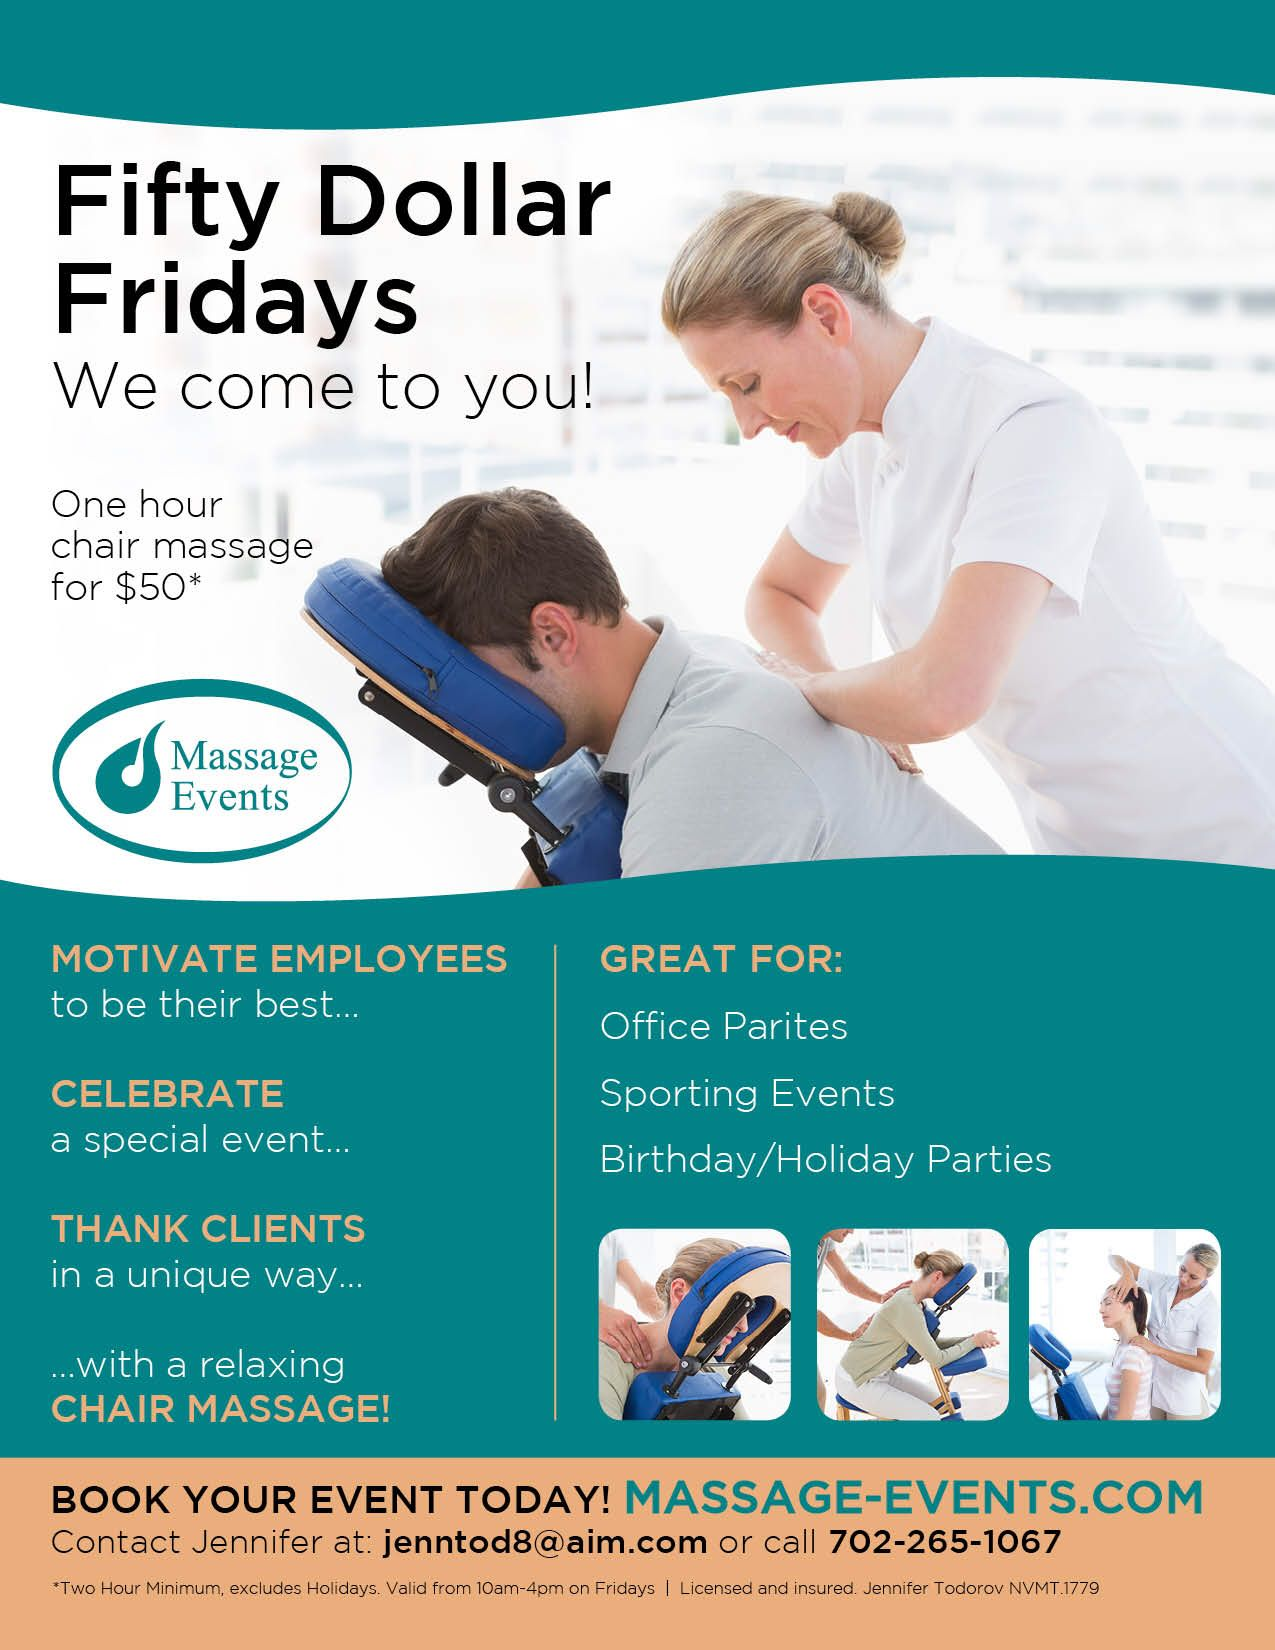 Full Hour Of Chair Massage On Fridays For 50 Massage Marketing